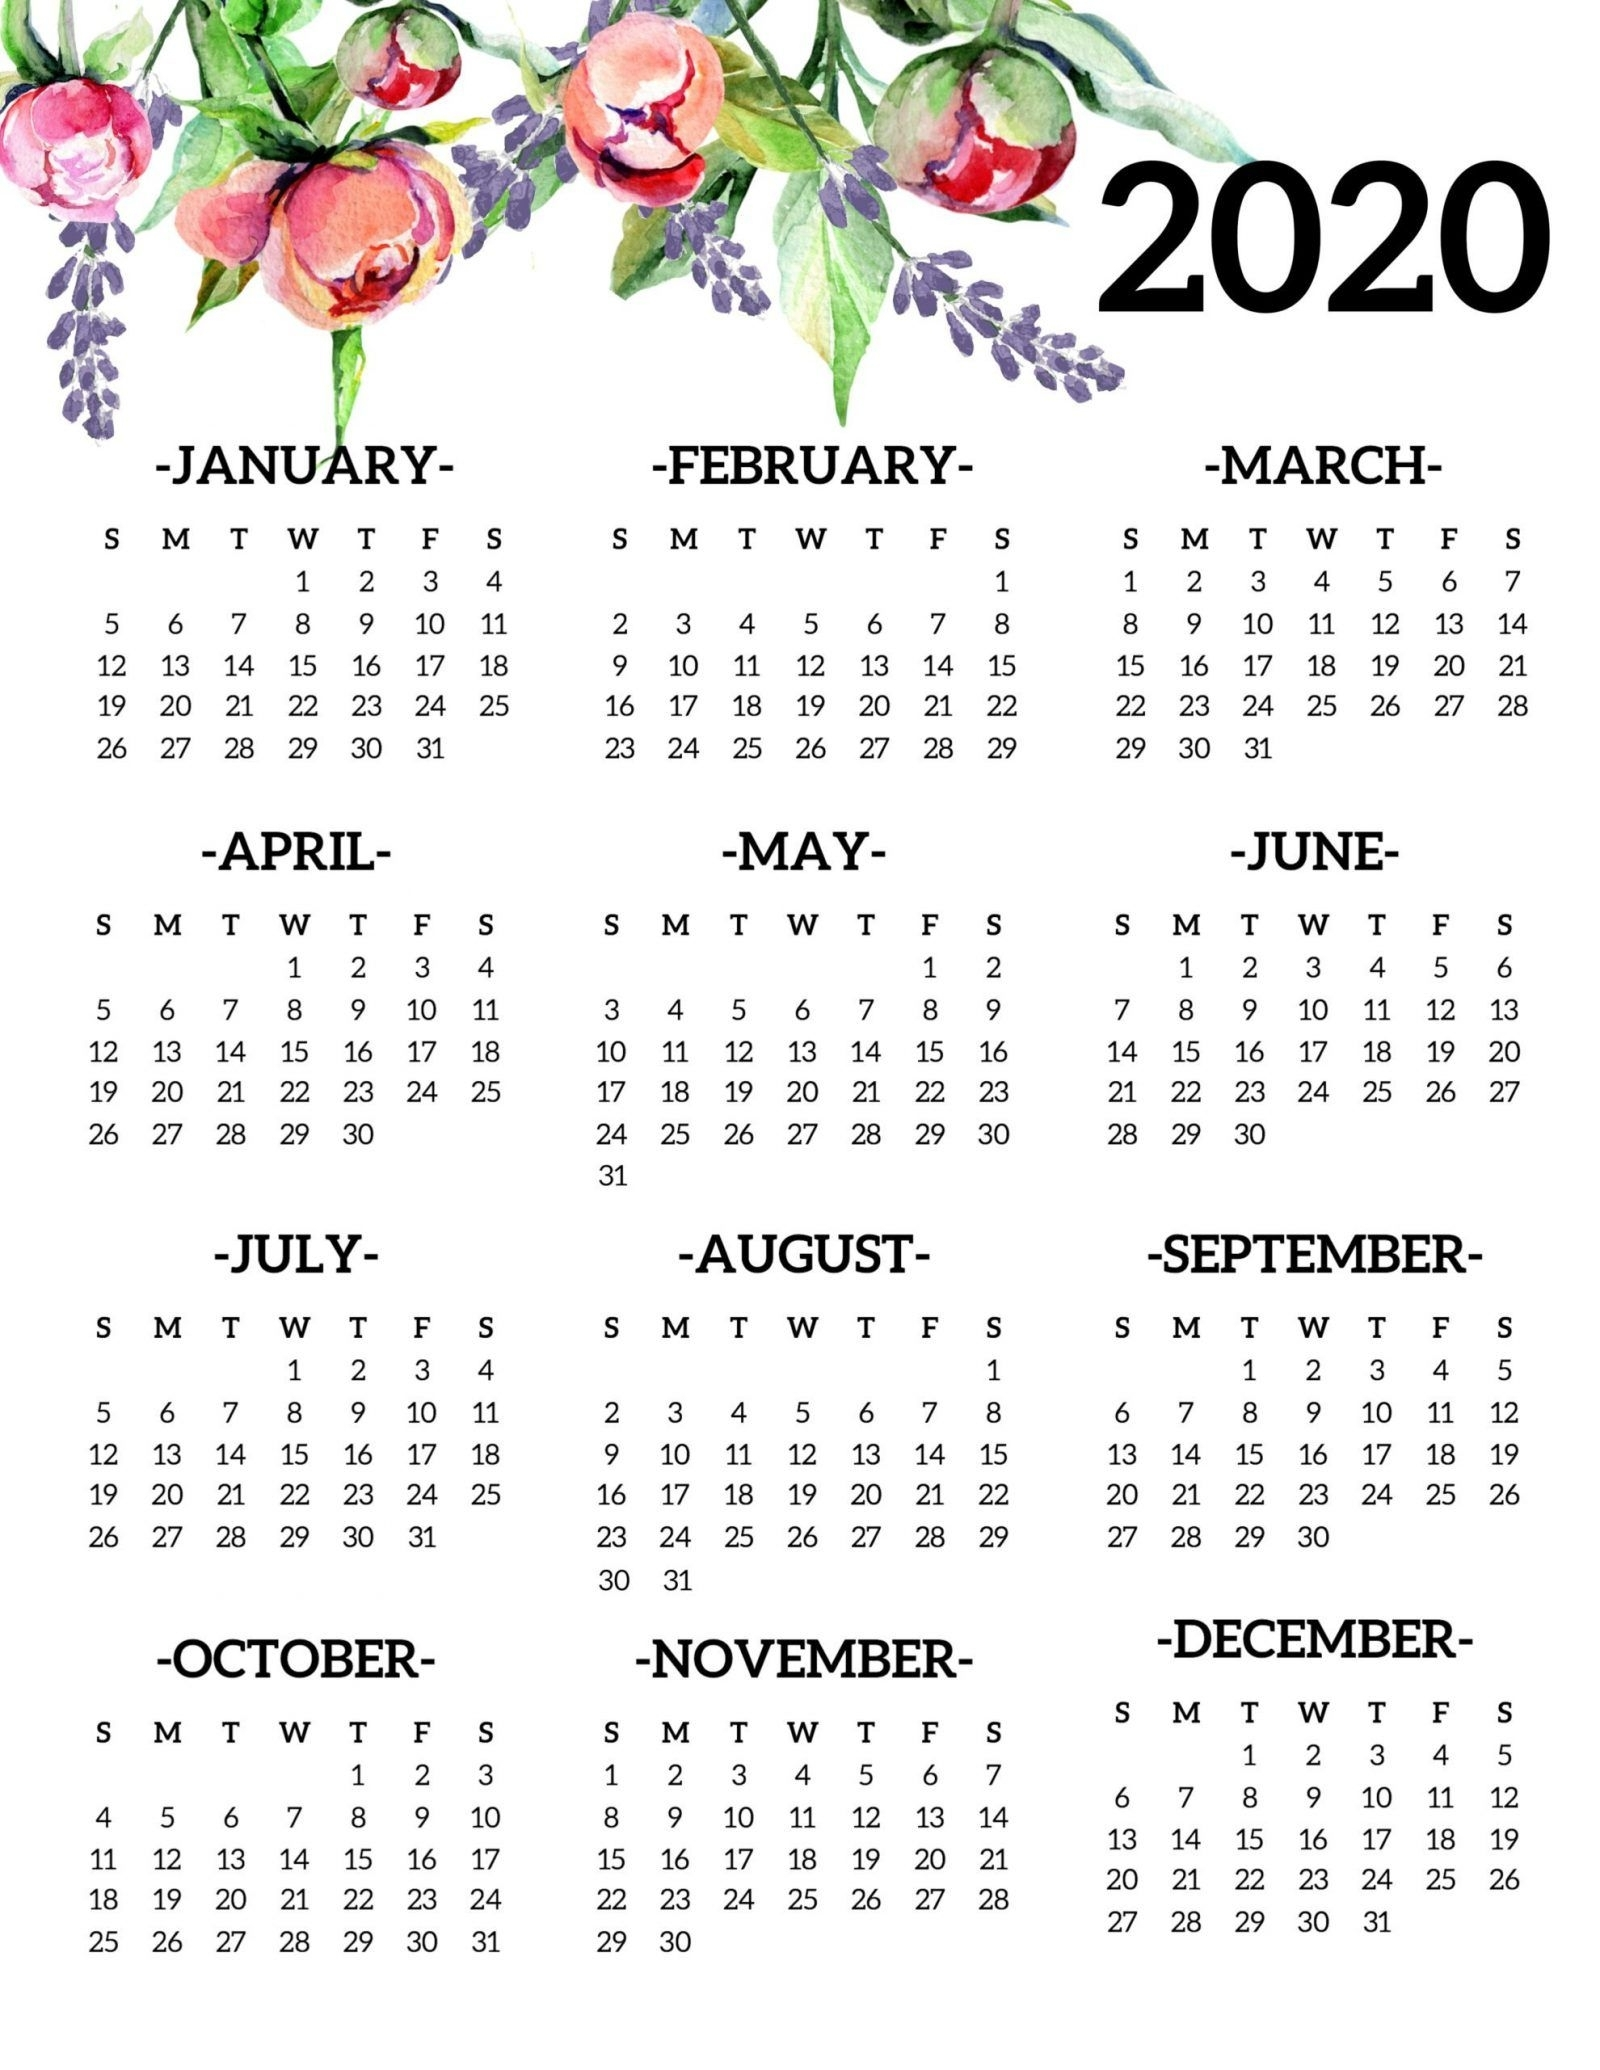 20 Free Printable Calendars For 2020 - Yesmissy In 2020 intended for 2020 Calendar Year At A Glance Printable